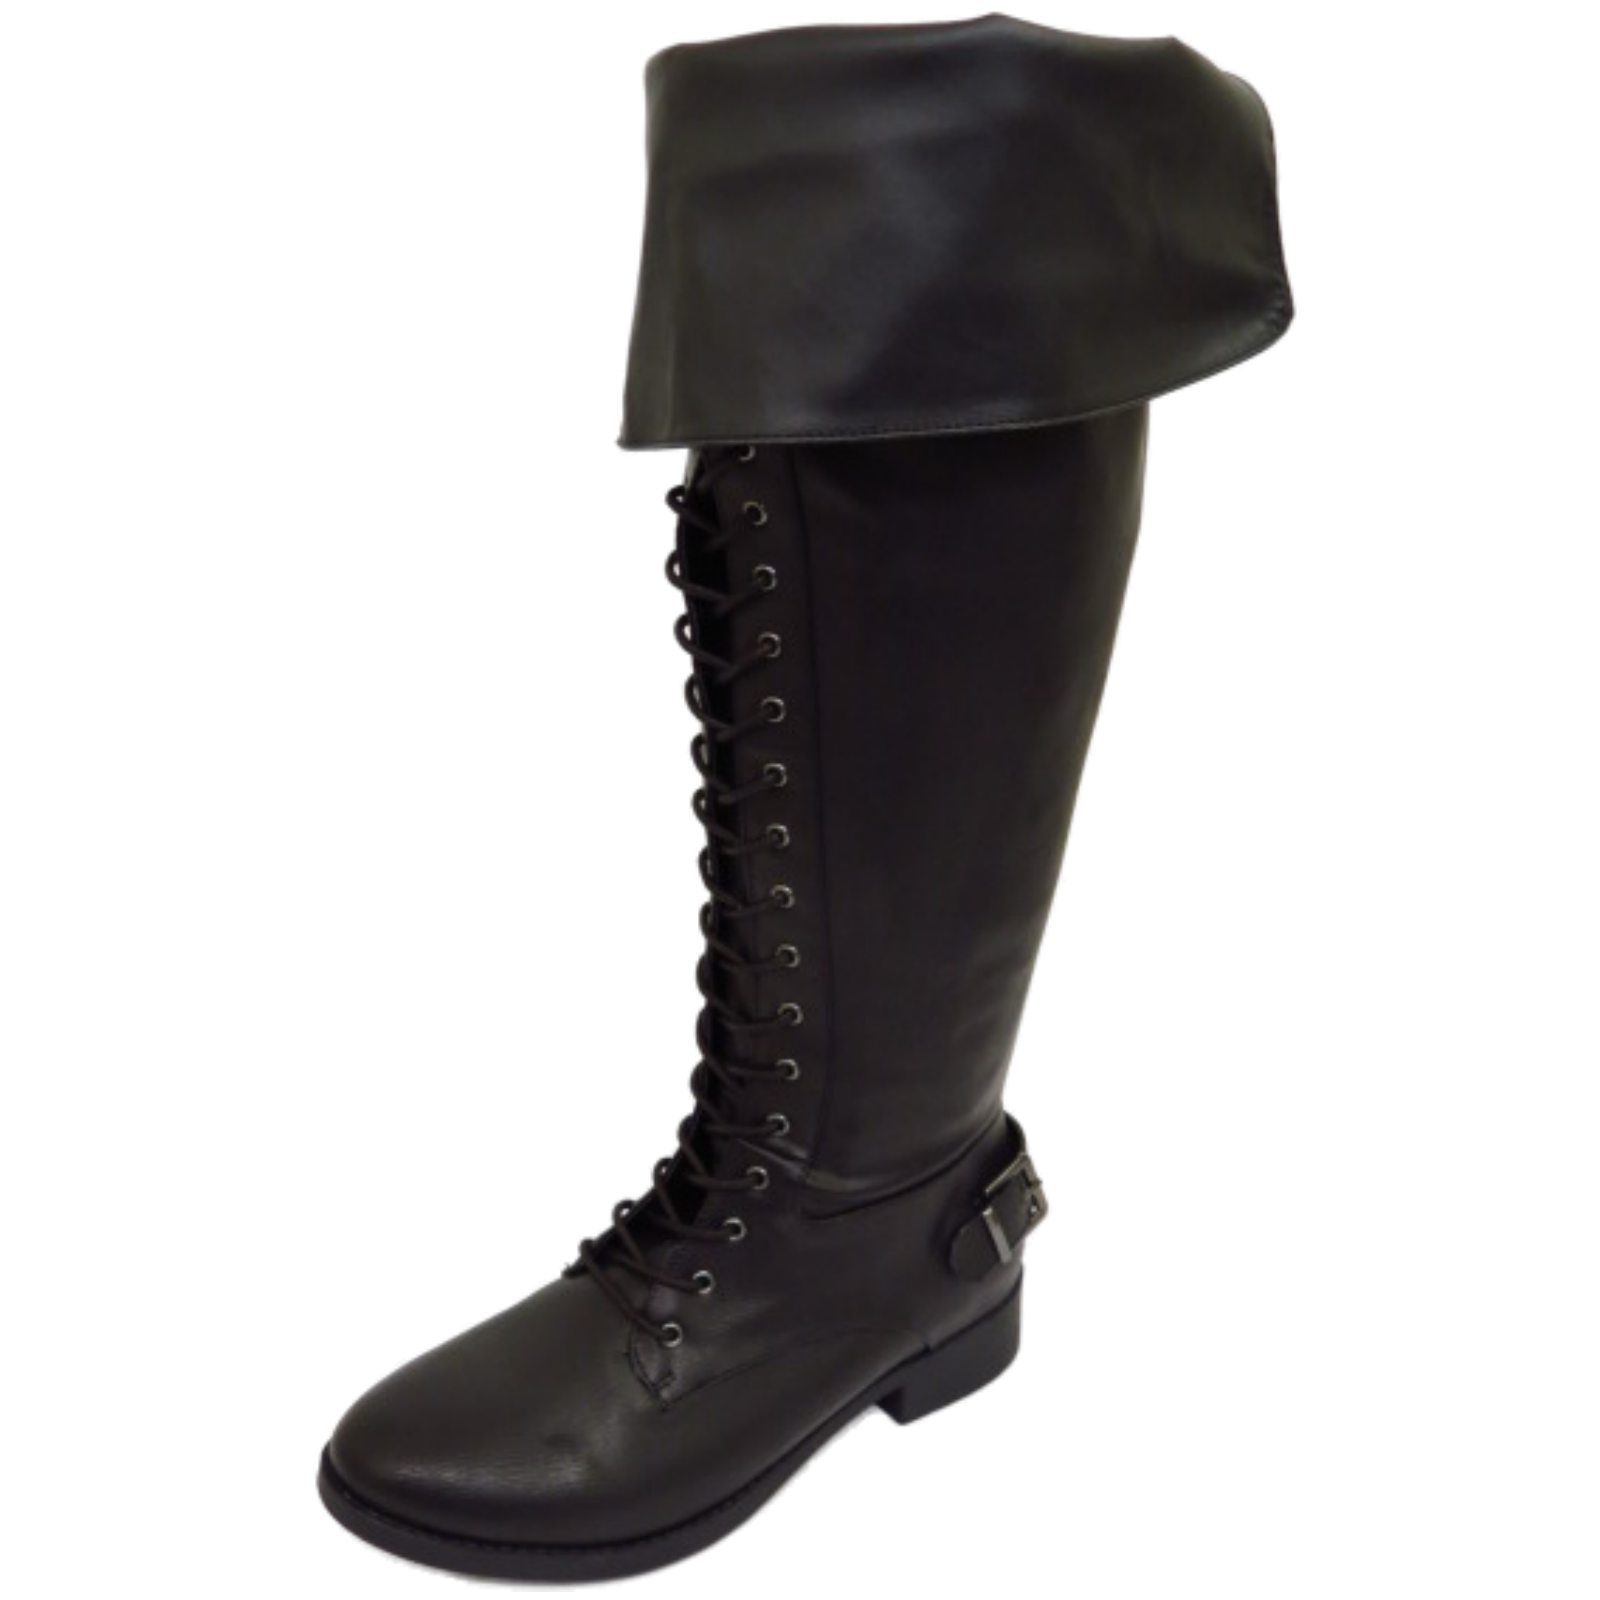 e290530c11c1e Details about WOMENS BLACK EXTRA WIDE CALF FIT LACE-UP BIKER KNEE-HIGH  RIDING TALL BOOTS 6-11